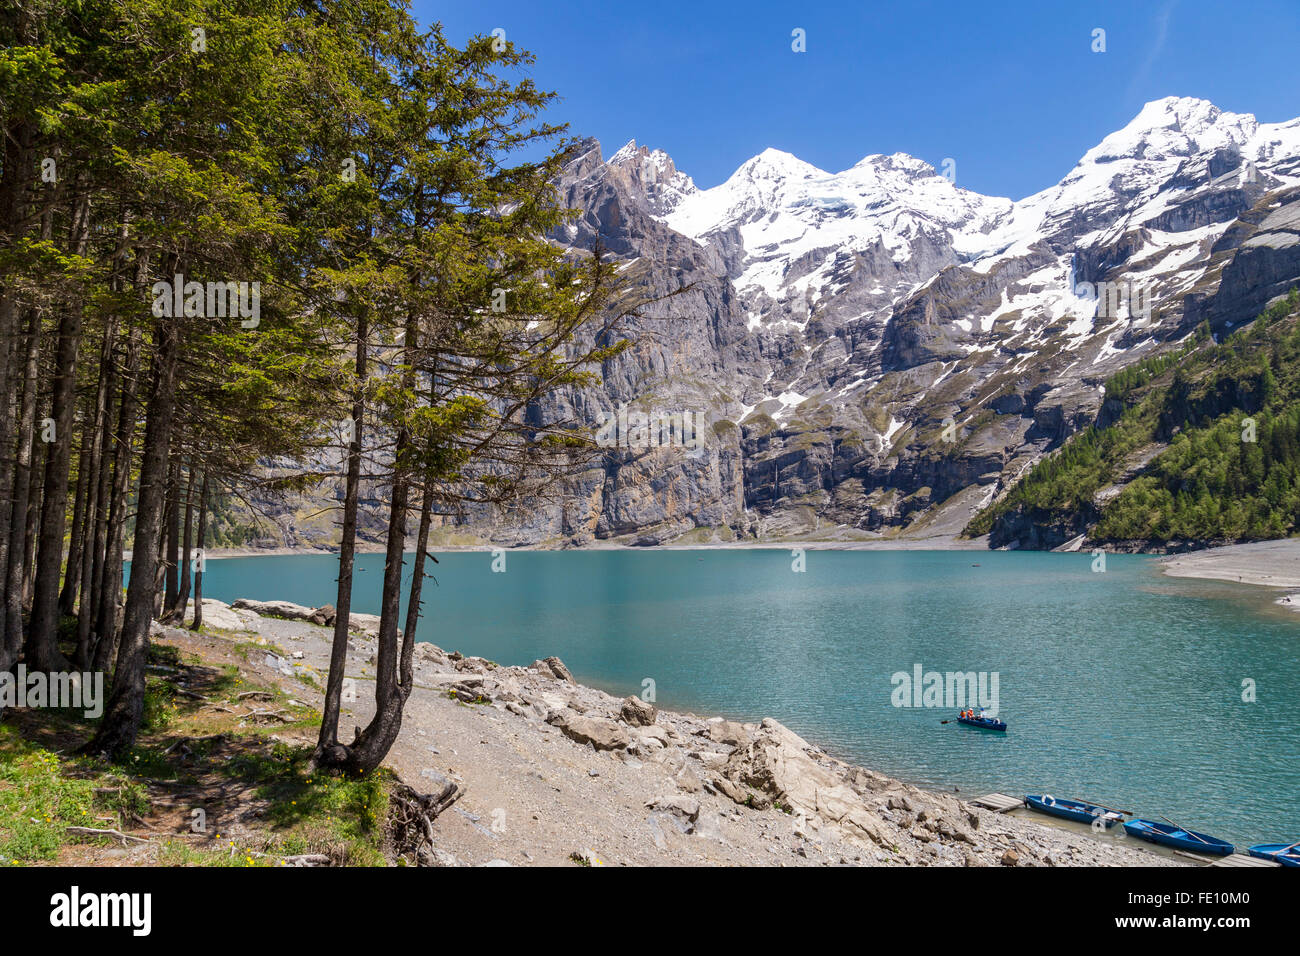 View of Oeschinensee (Oeschinen lake) with Bluemlisalp and Frundenhorn of Swiss alps on Bernese Oberland - Stock Image